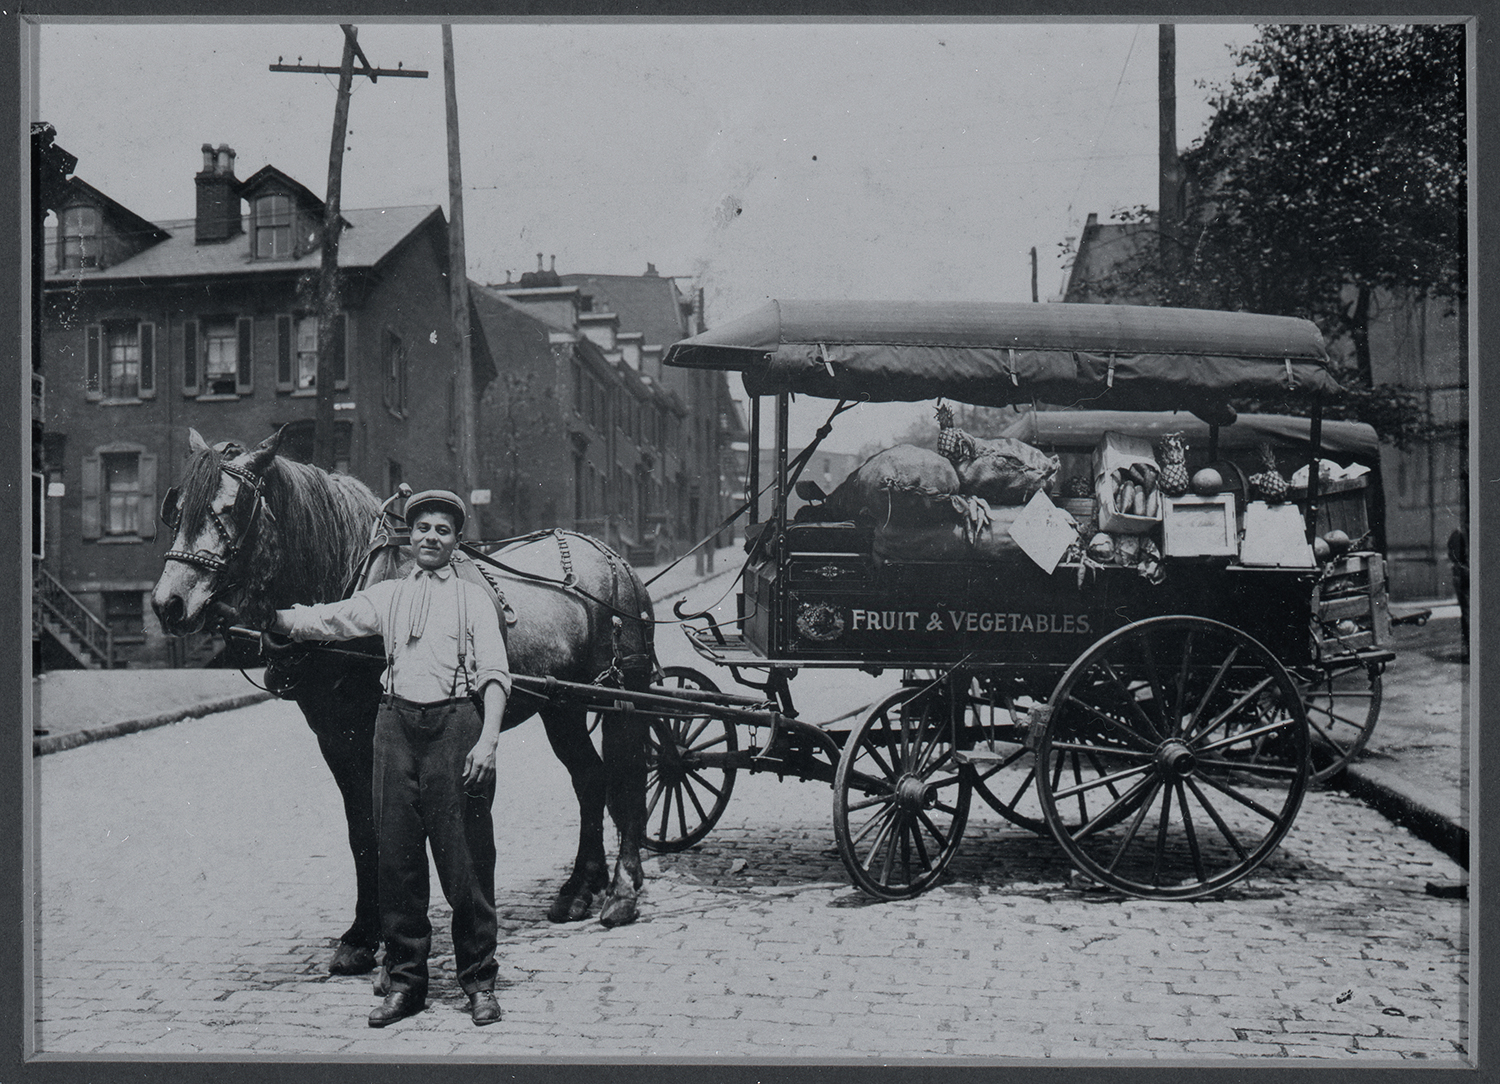 Frank Crisanti and his huckster wagon. Gift of Paul Crisanti. Italian American Collection, Detre Library & Archives at the Heinz History Center.